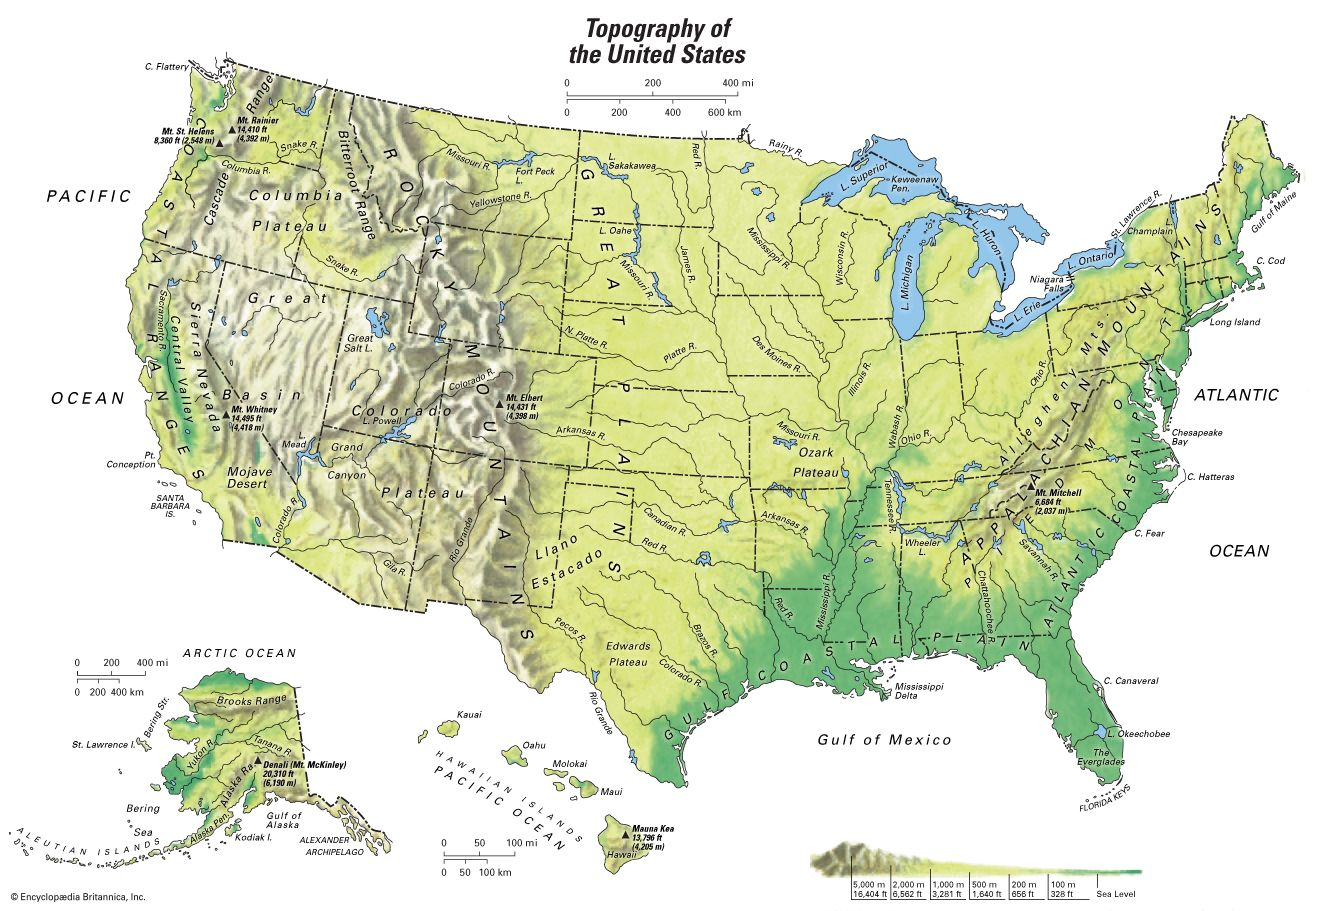 Map Still Topographical Map Of The United States